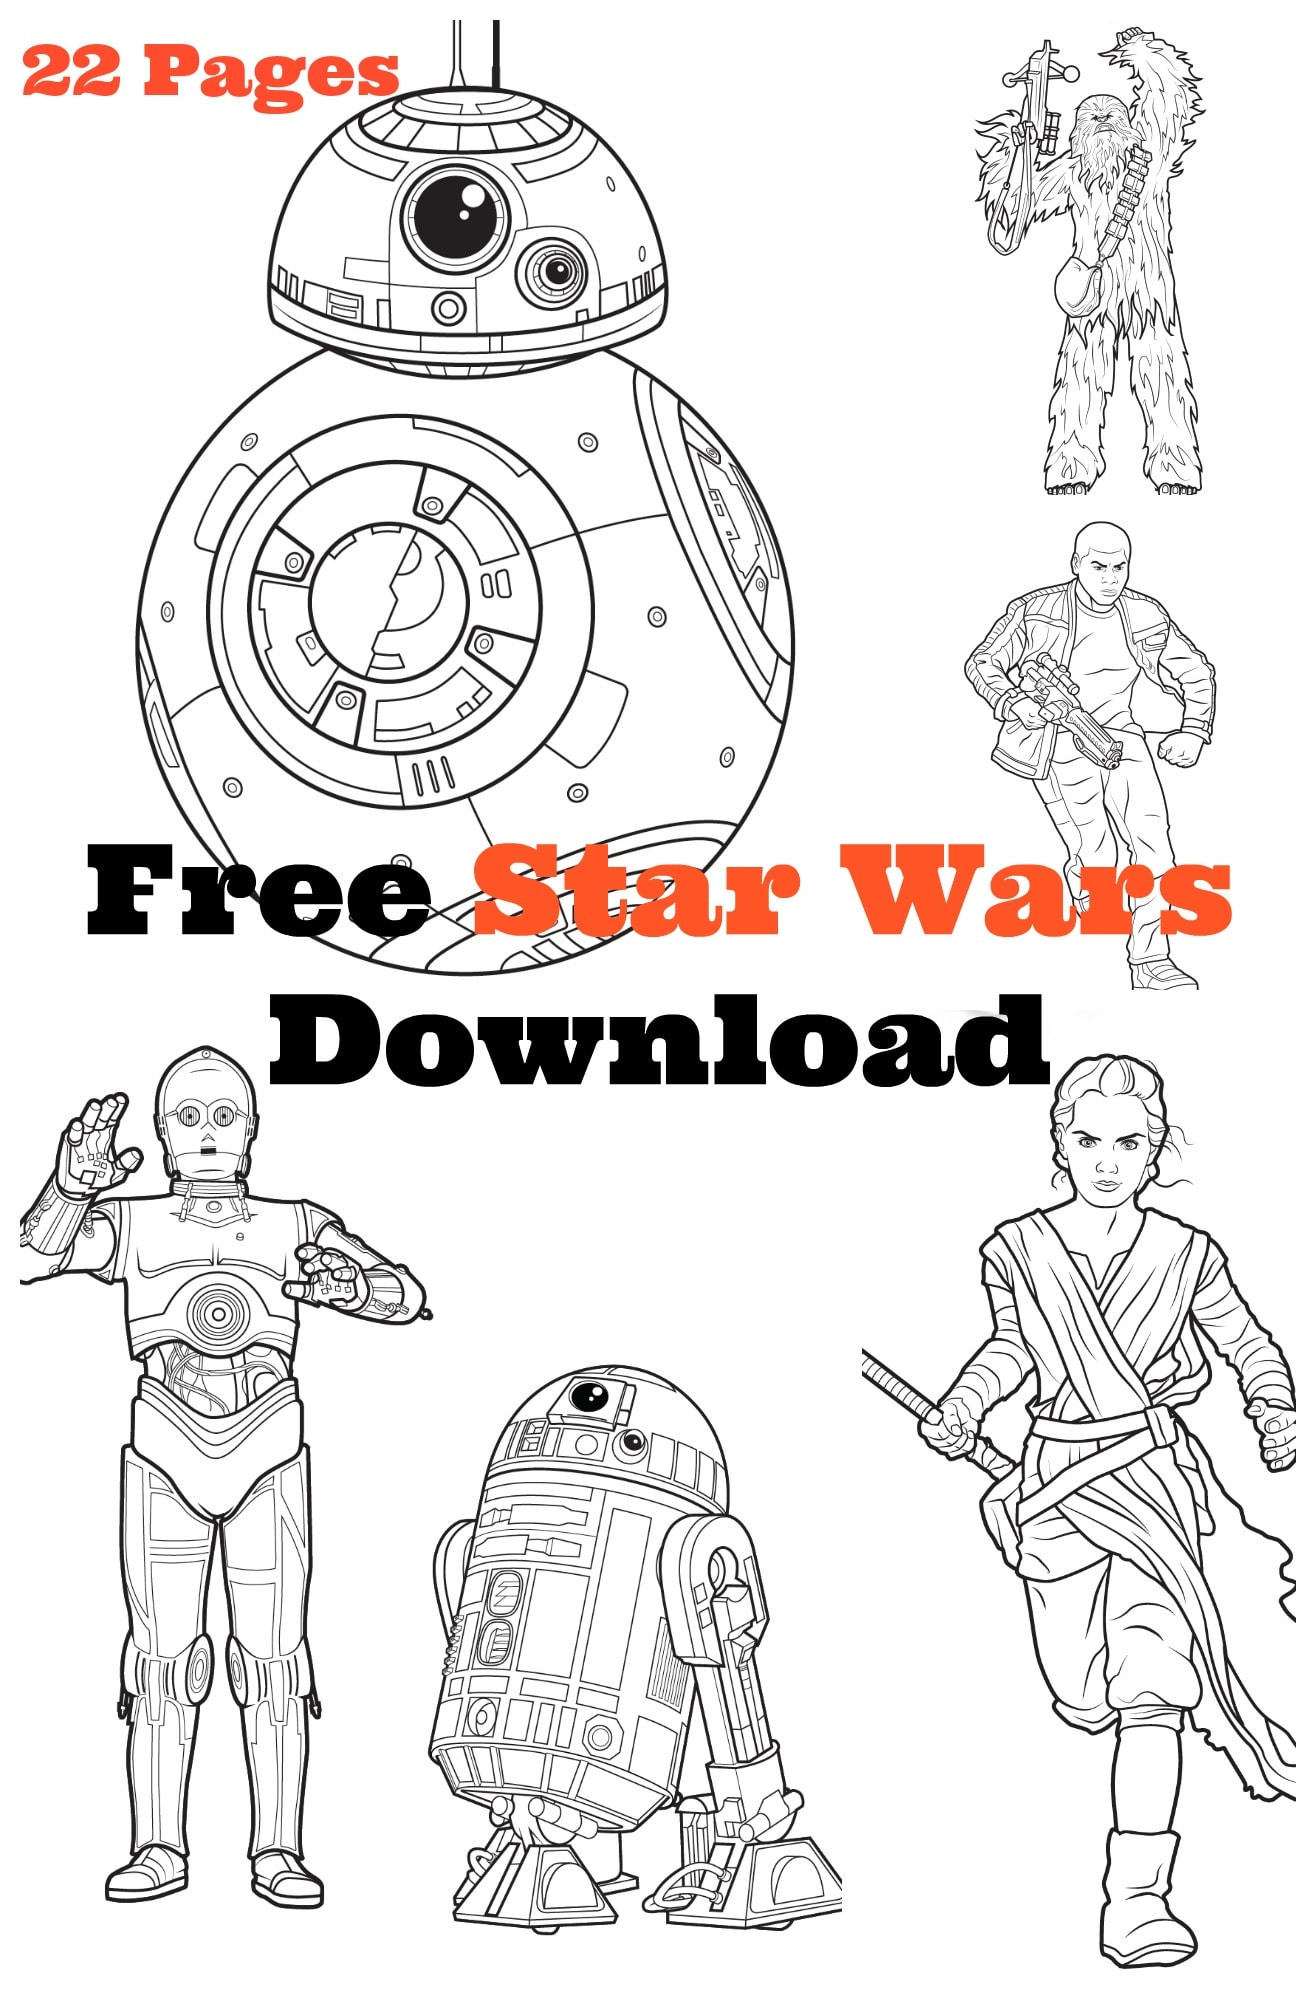 MEGA Star Wars Free Coloring Activity Kit Download